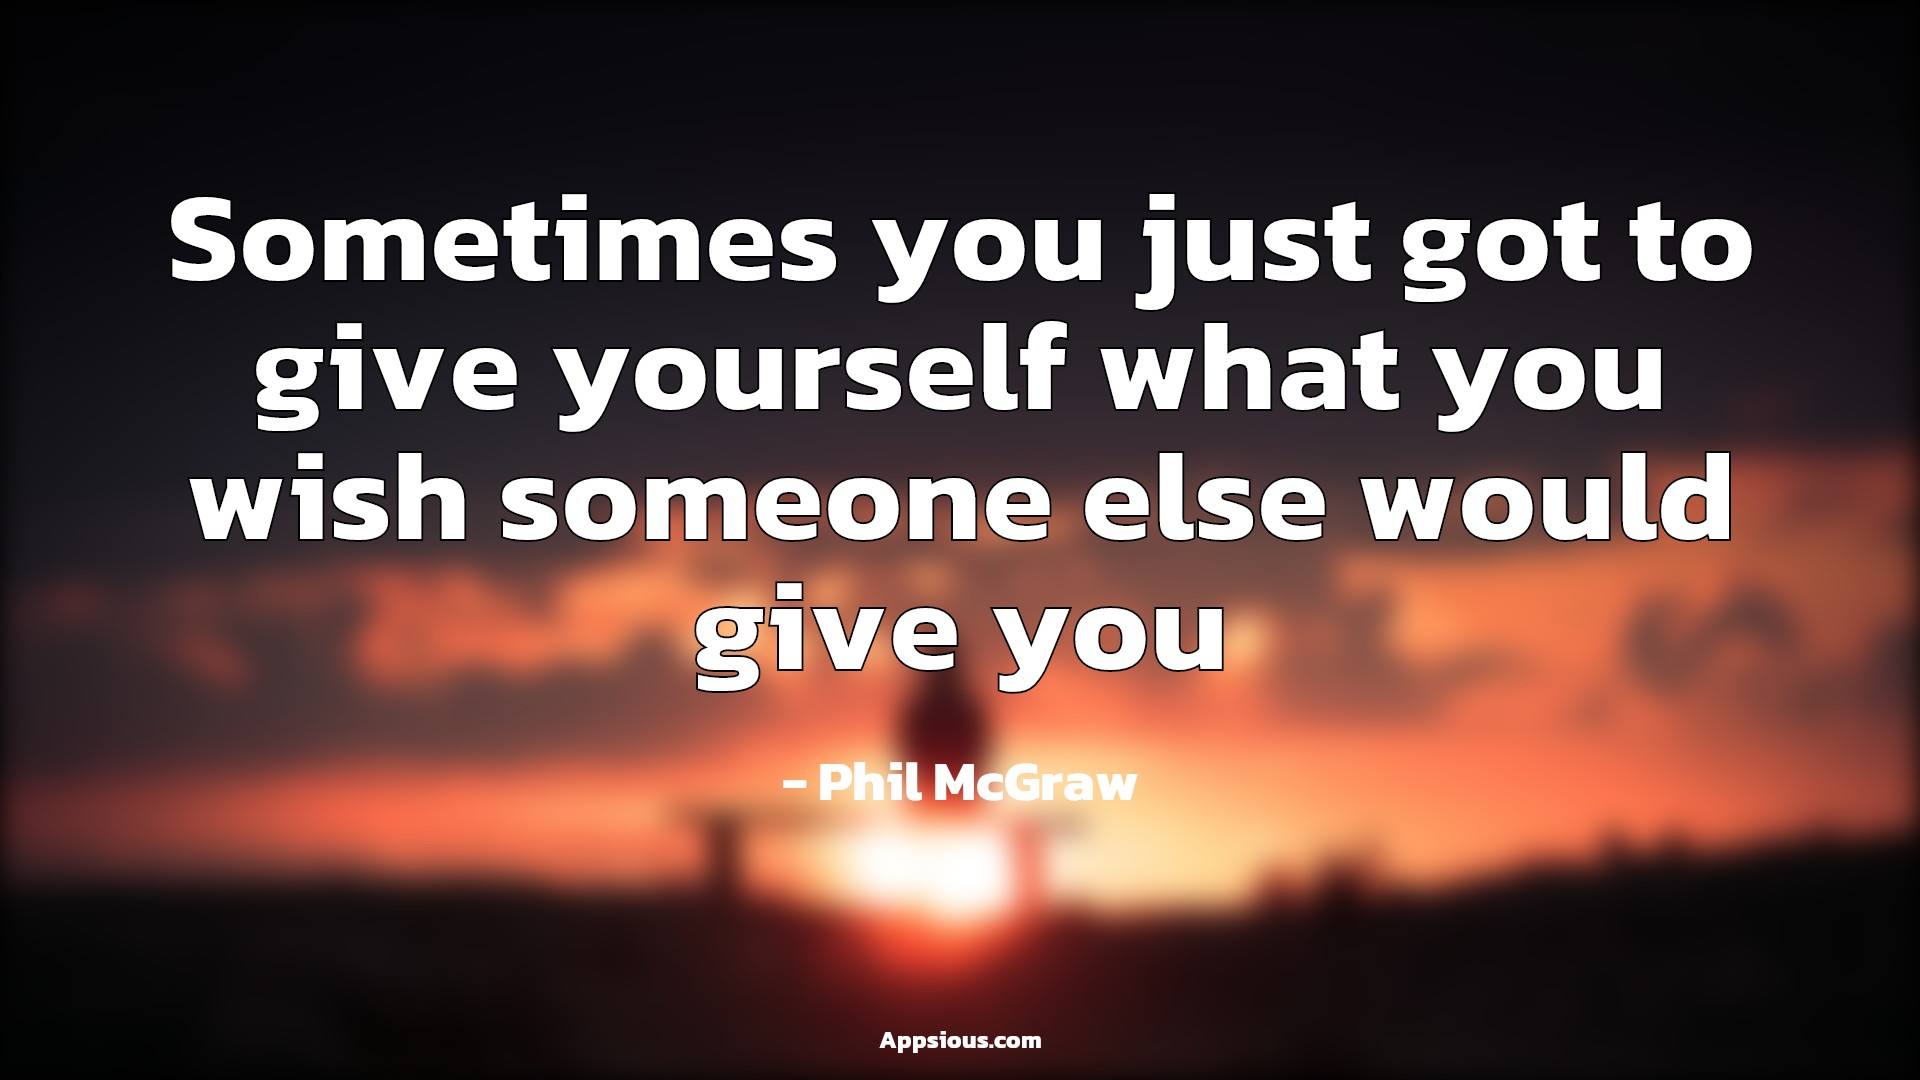 Sometimes you just got to give yourself what you wish someone else would give you